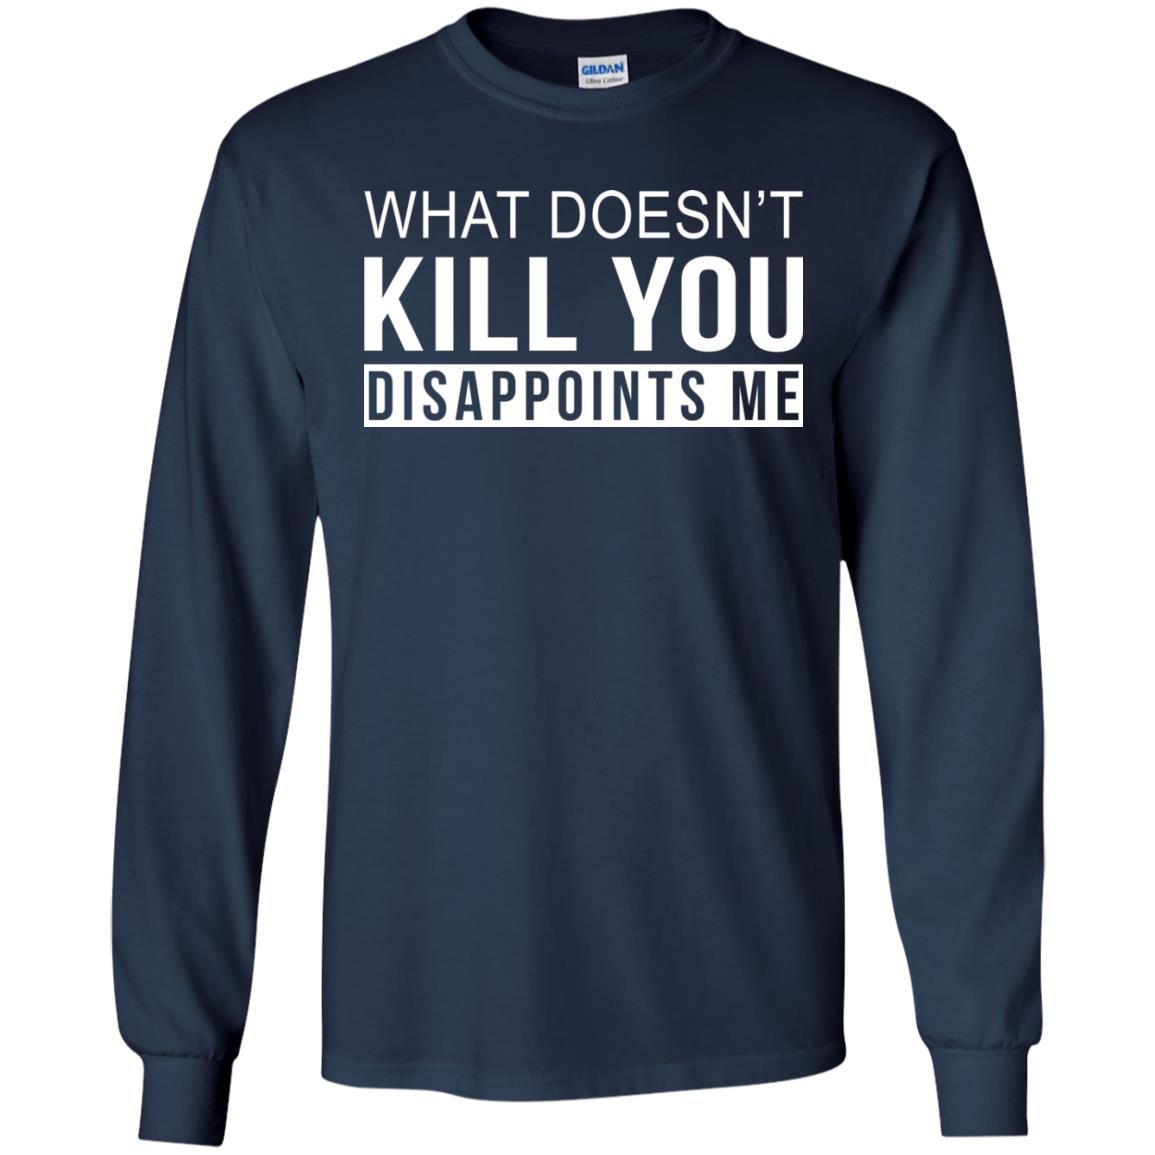 image 265 - What Doesn't Kill You Disappoints Shirt, Hoodie, Sweatshirt